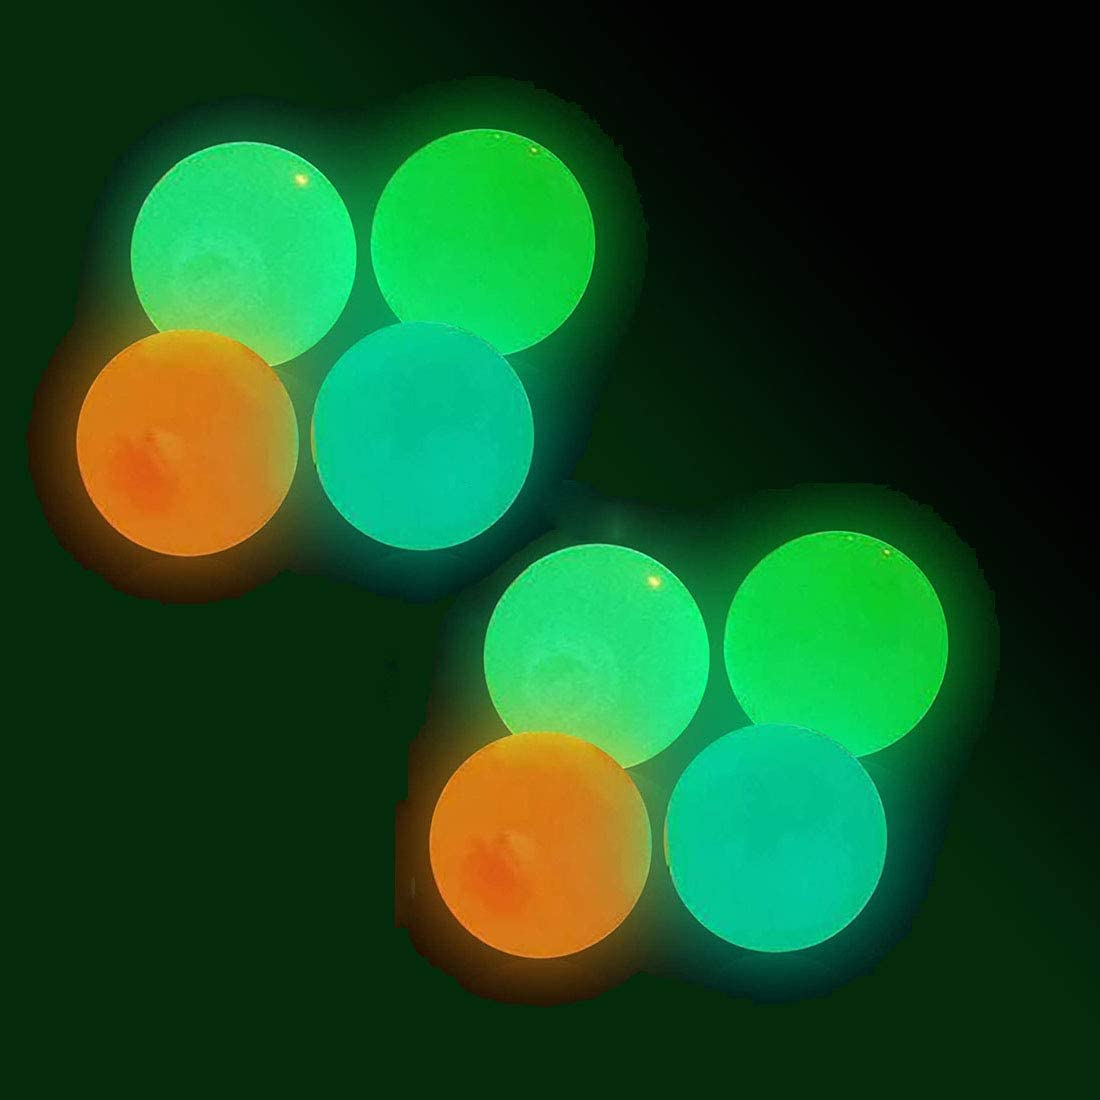 Sticky Wall Balls,Ceiling Balls Sticky Balls for Kids Adult,Stick to The Wall and Slowly Fall Off Luminescent Stress Relief Squishy Sticky Balls for Fun Toy for ADHD,OCD,Anxiety